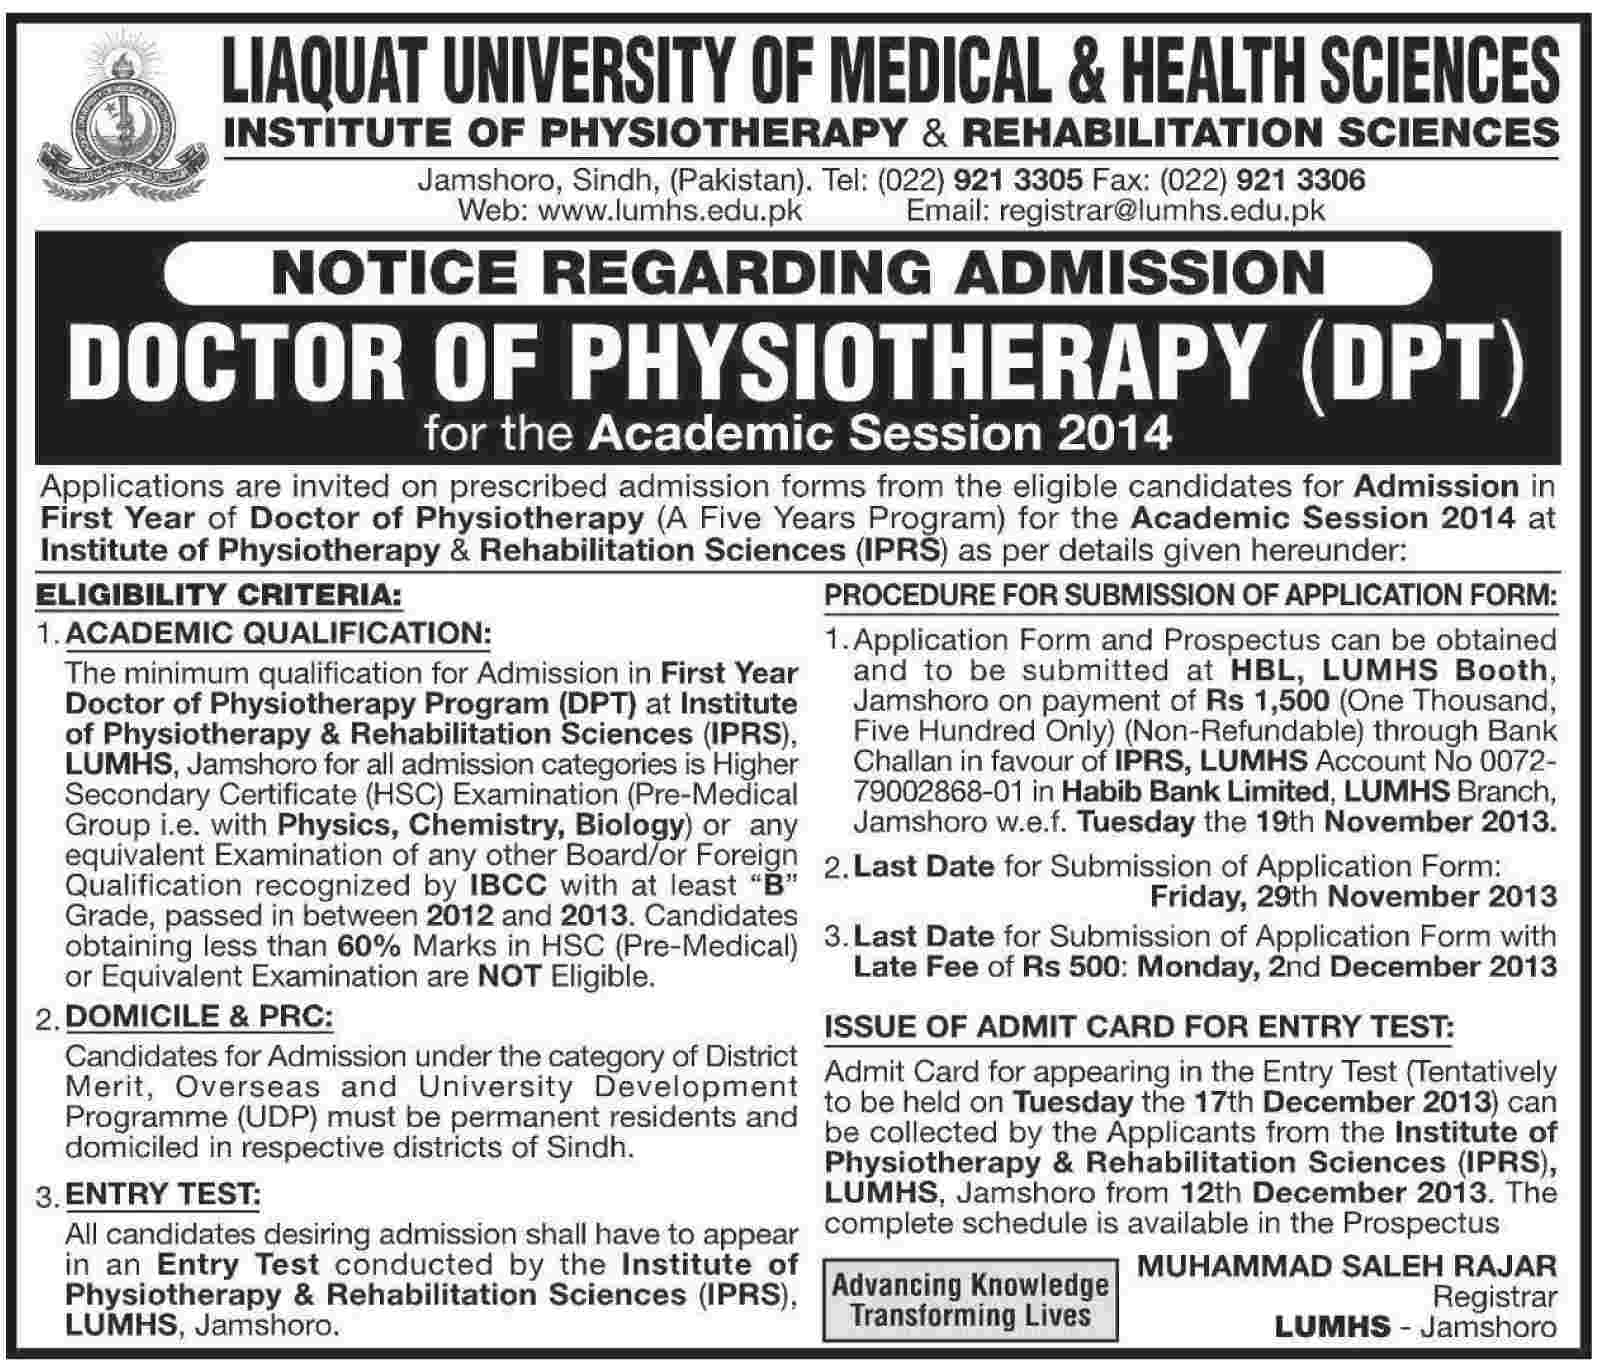 Liaquat University of Medical Health Sciences LUMHS Jamshoro Admission Notice 2013 for Doctor of Physical Therapy (DPT)